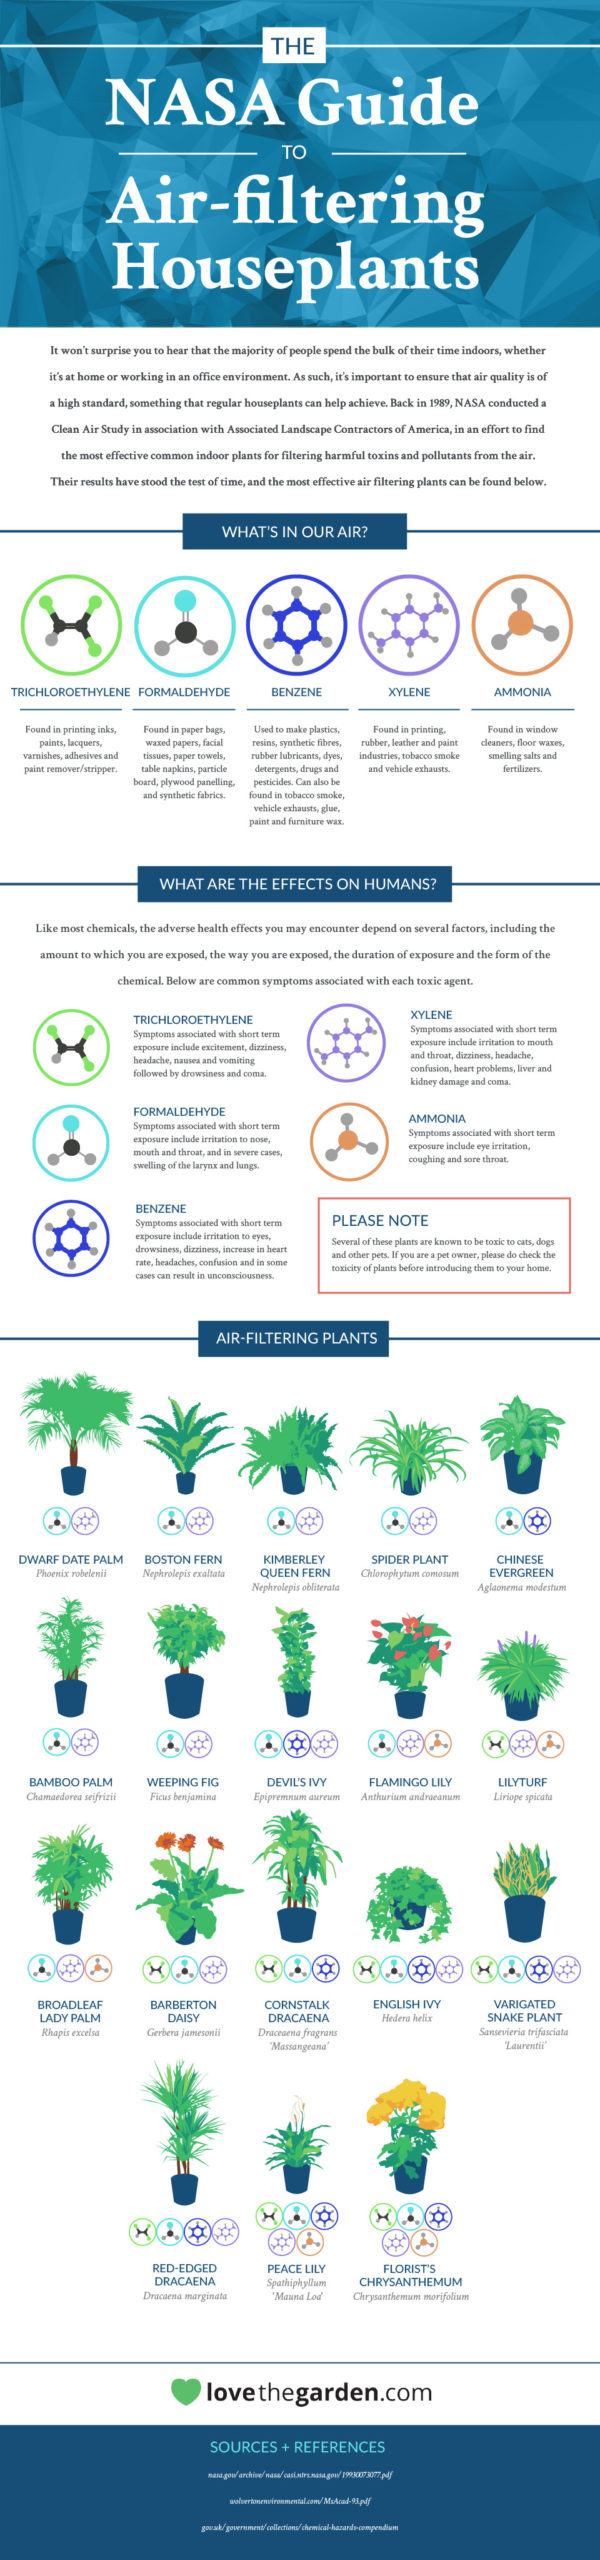 Best Air-Cleaning Plants, According to NASA